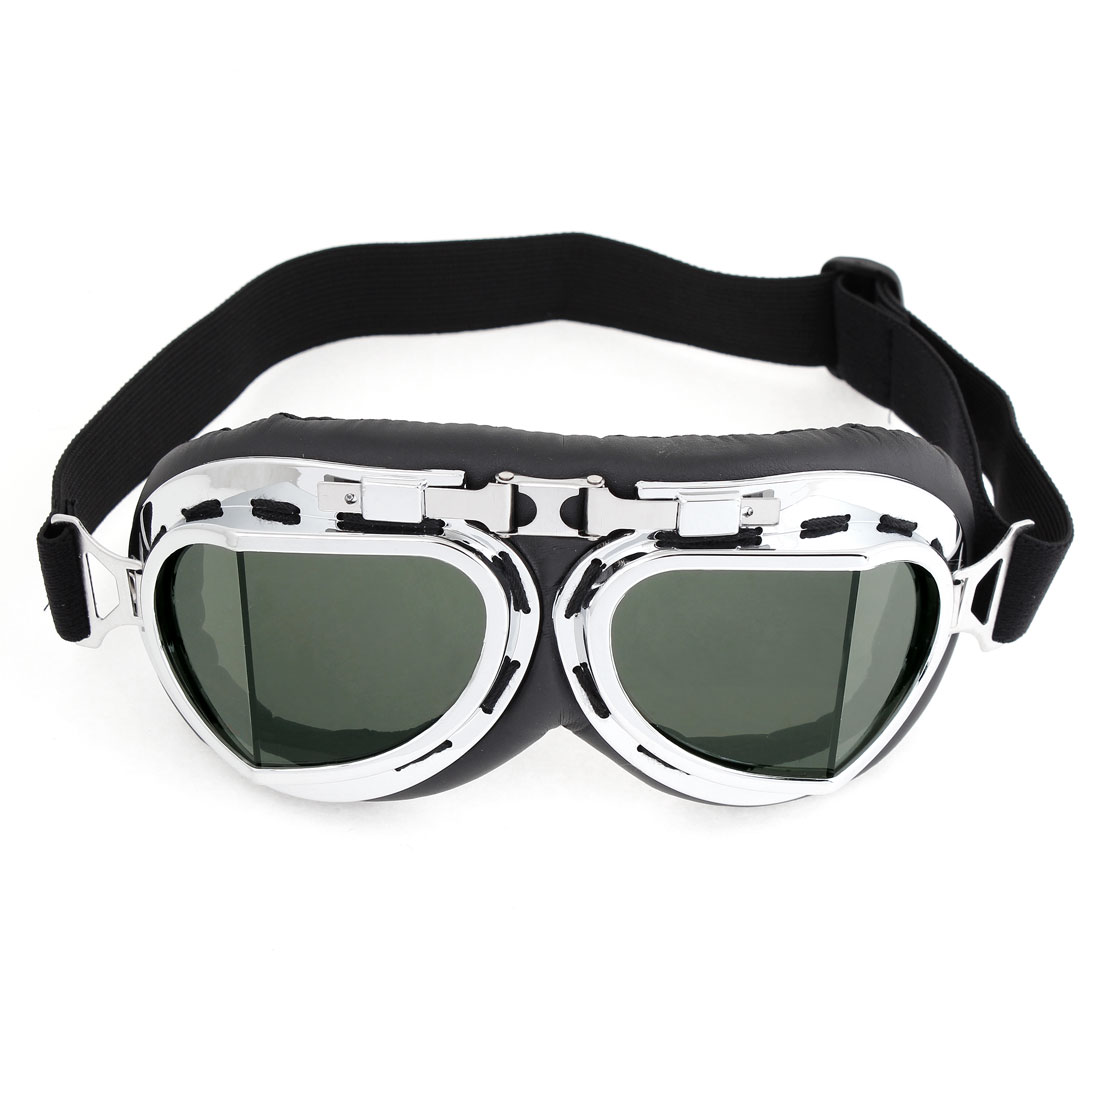 Unique Bargains Silver Tone Plastic Rimmed Wide Angle Ski Snowboard Goggles for Men Women by Unique-Bargains